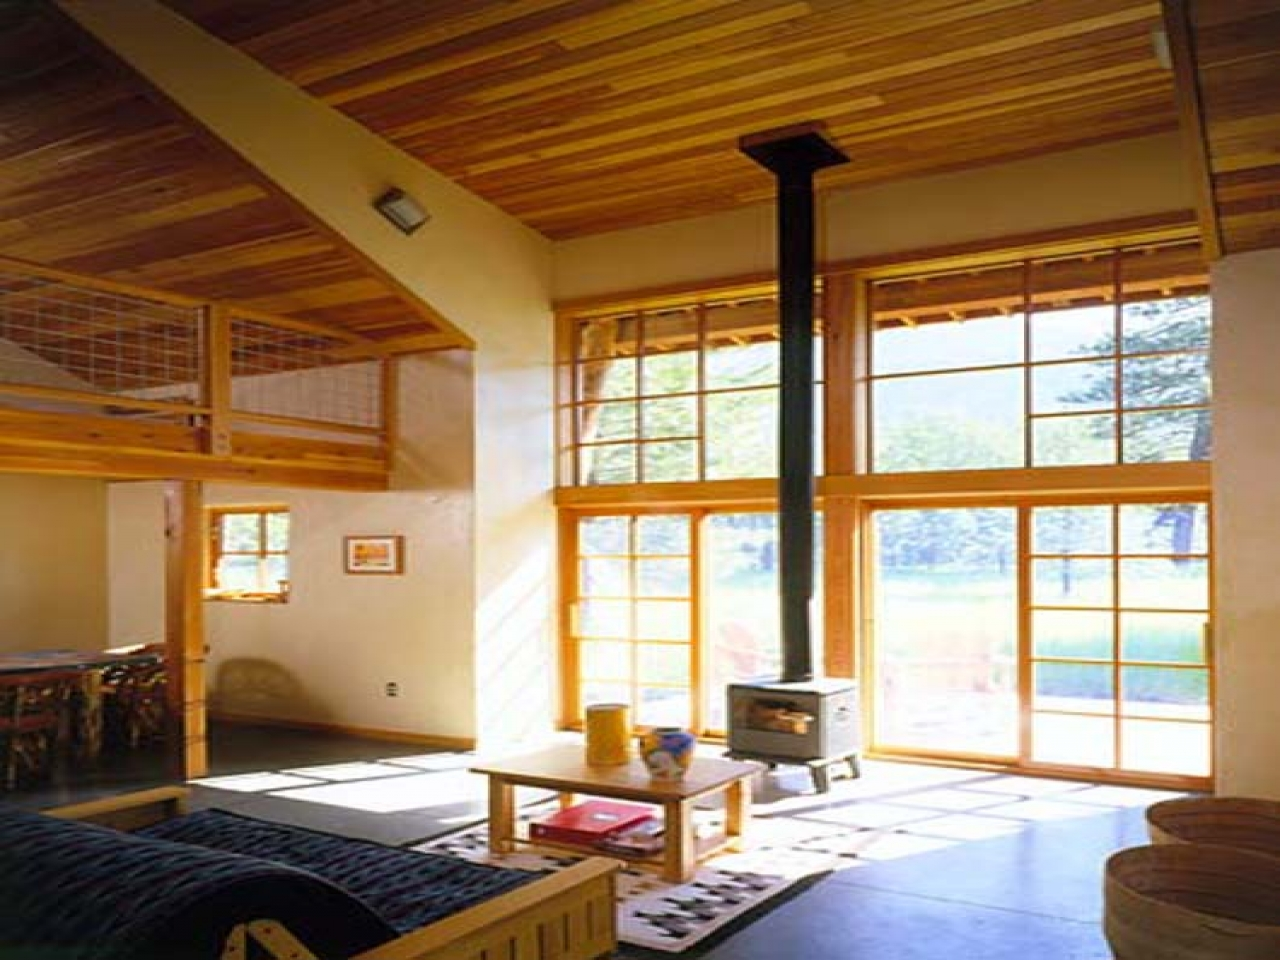 Cabin Design Ideas Cabin Interior Decorating Ideas Rustic Log Cabin Interior